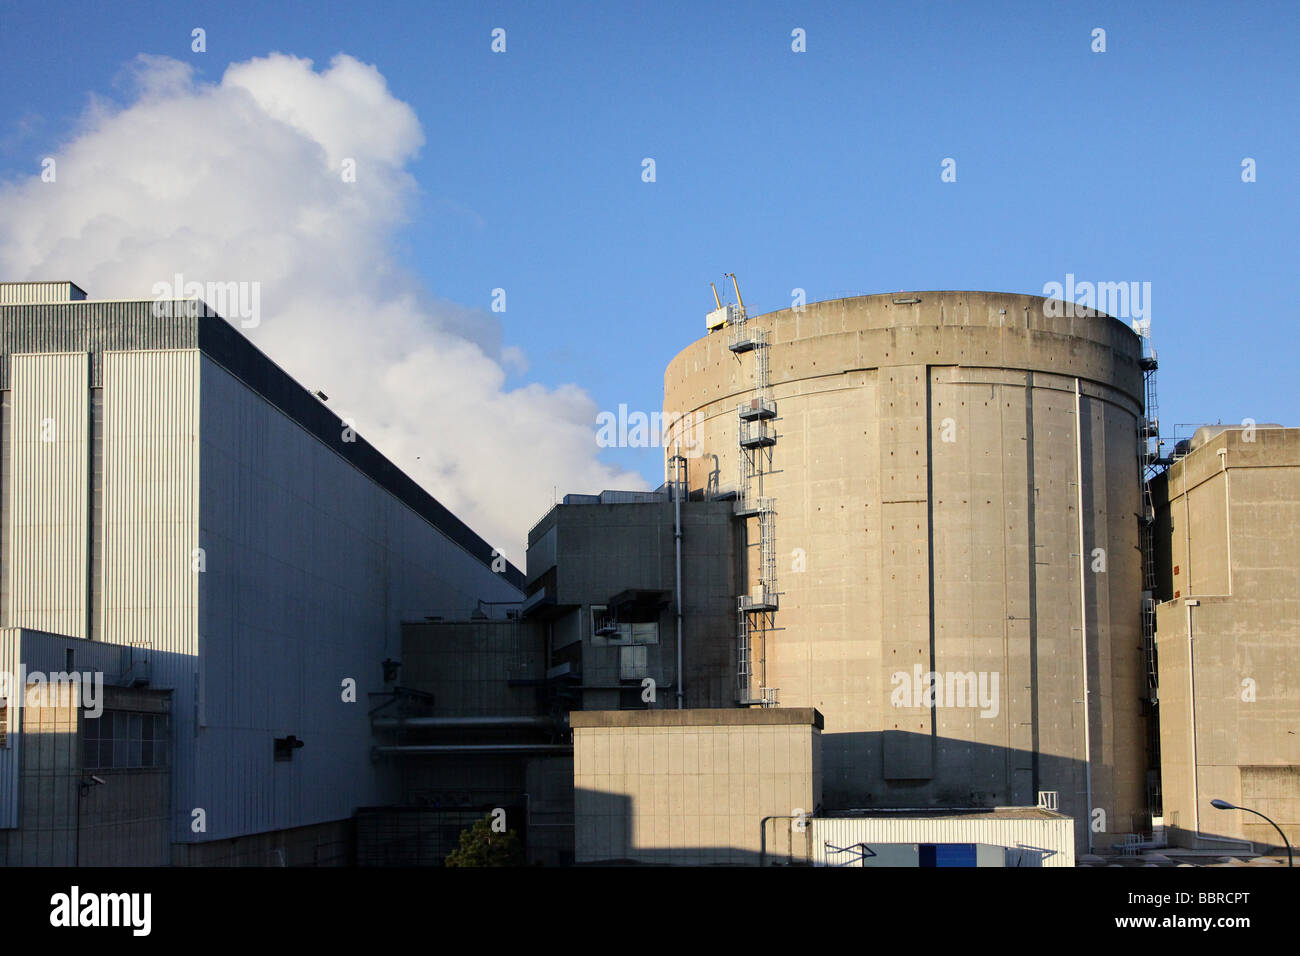 REP TYPE PRESSURIZED WATER REACTOR IN A SECTION OF THE EDF NUCLEAR POWER PLANT IN BUGEY, AIN (01), FRANCE - Stock Image